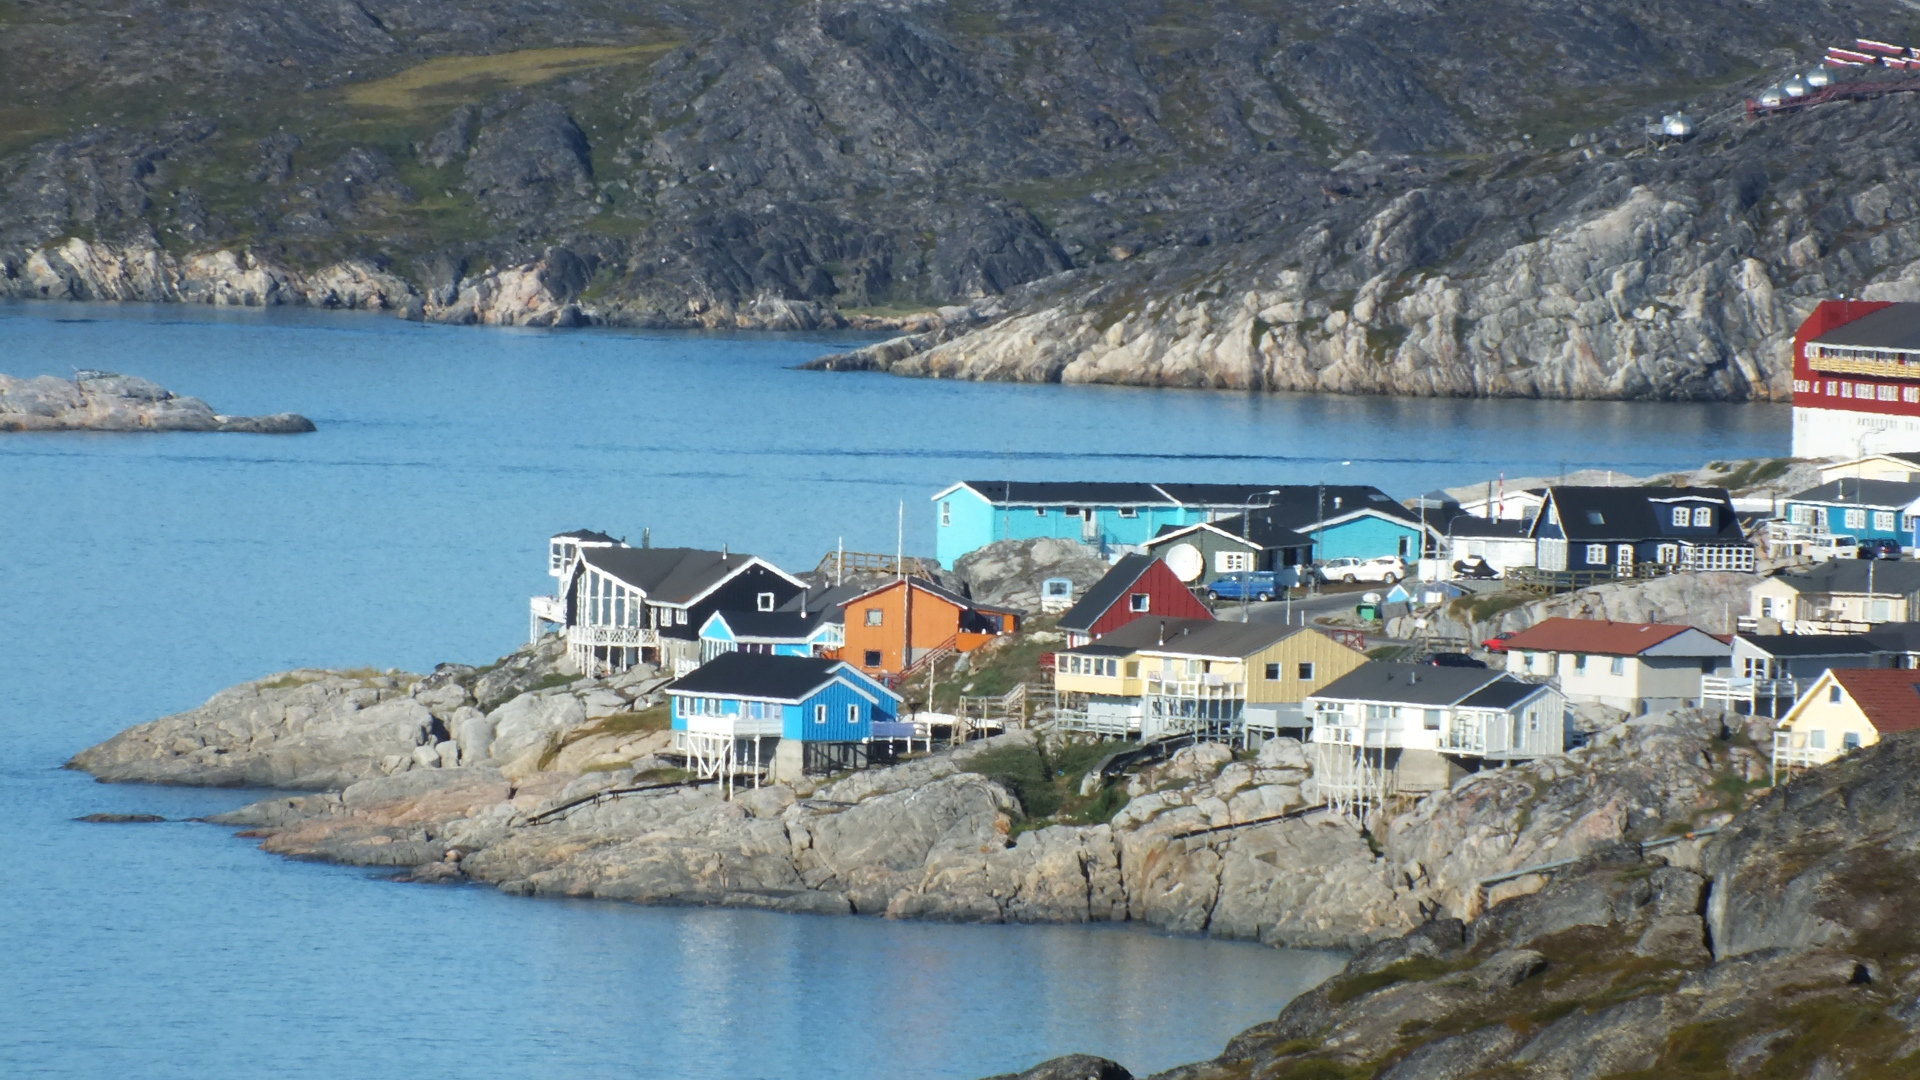 Greenland through the eyes of Mary Katona - Photo: Mary Katona